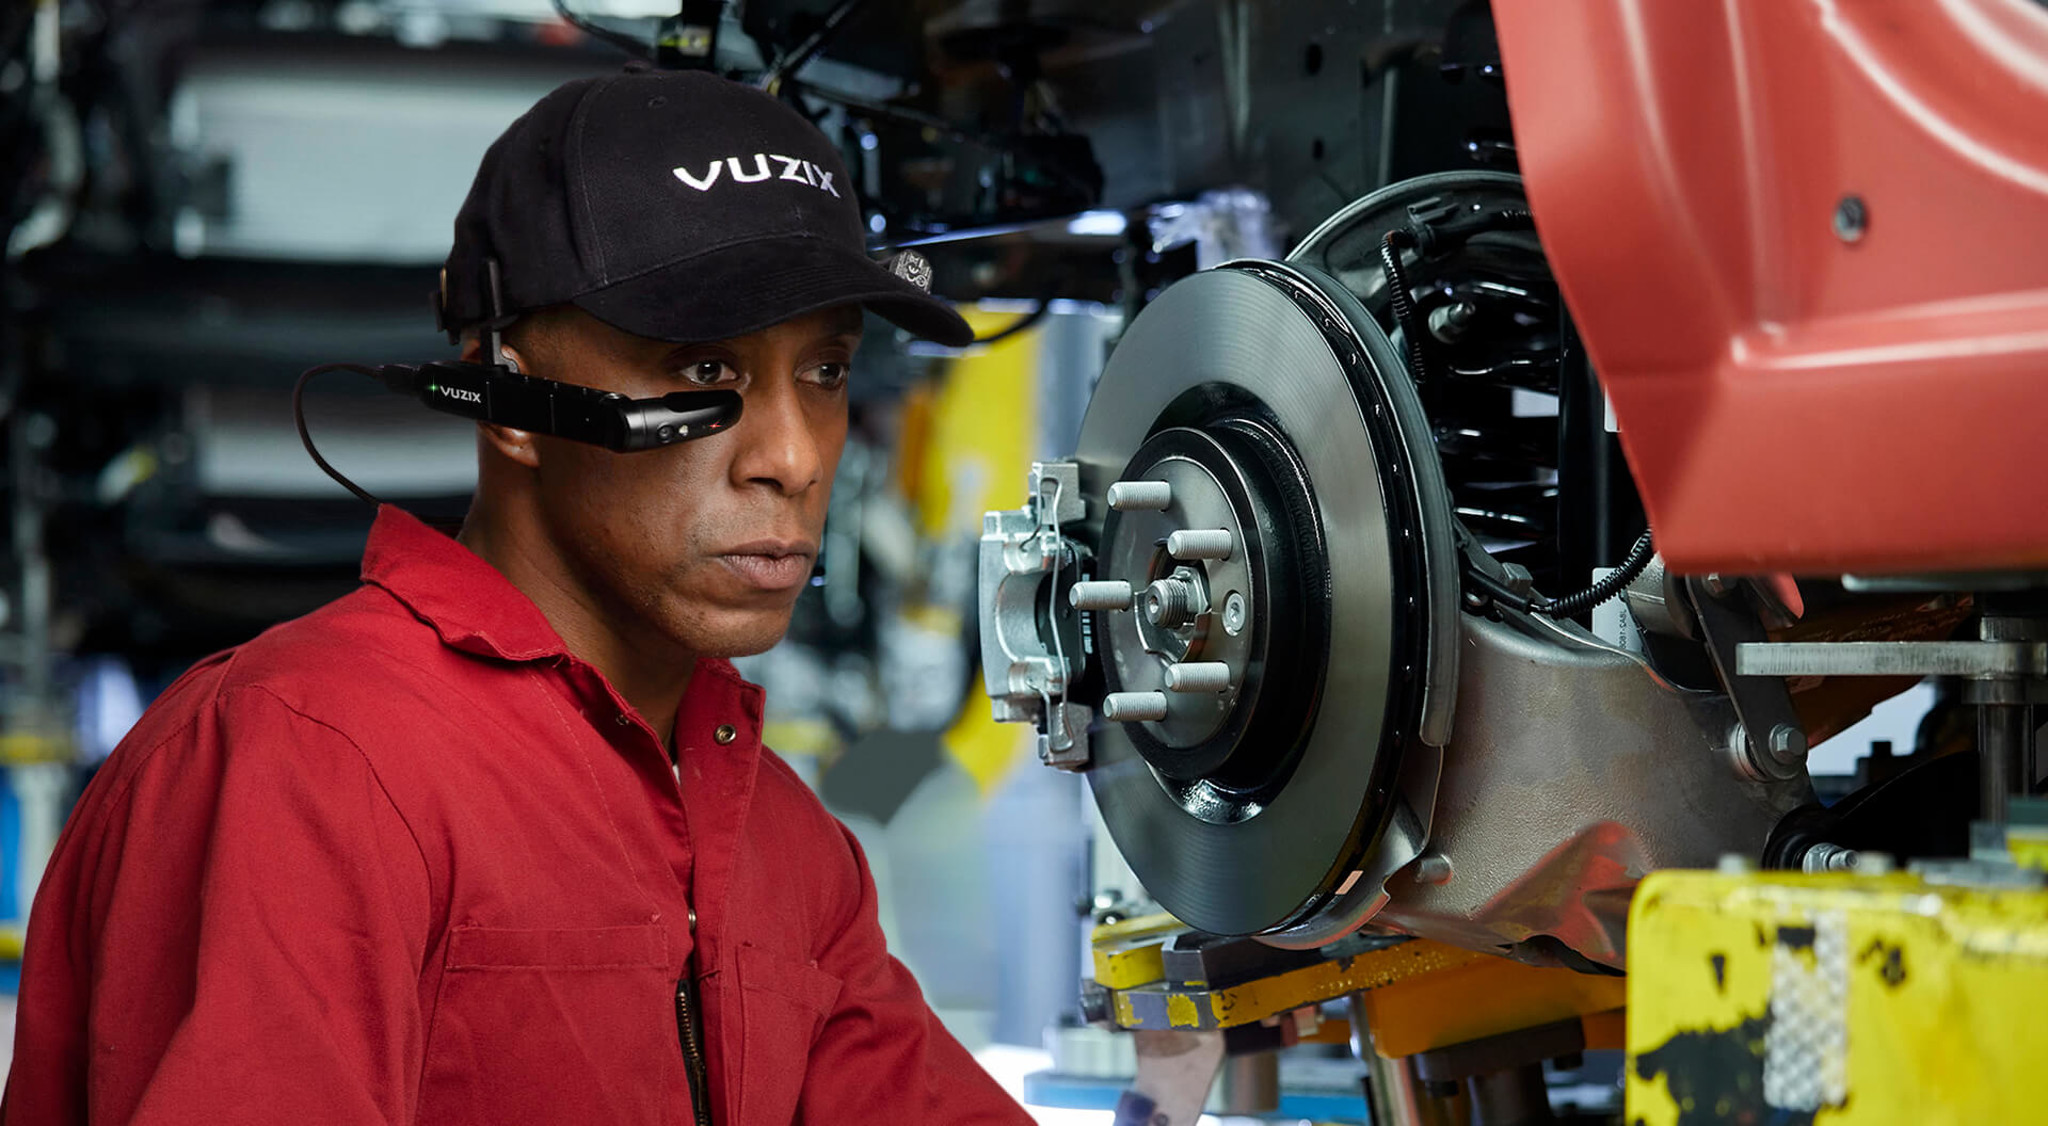 Usage of Vuzix AR glasses in the industry